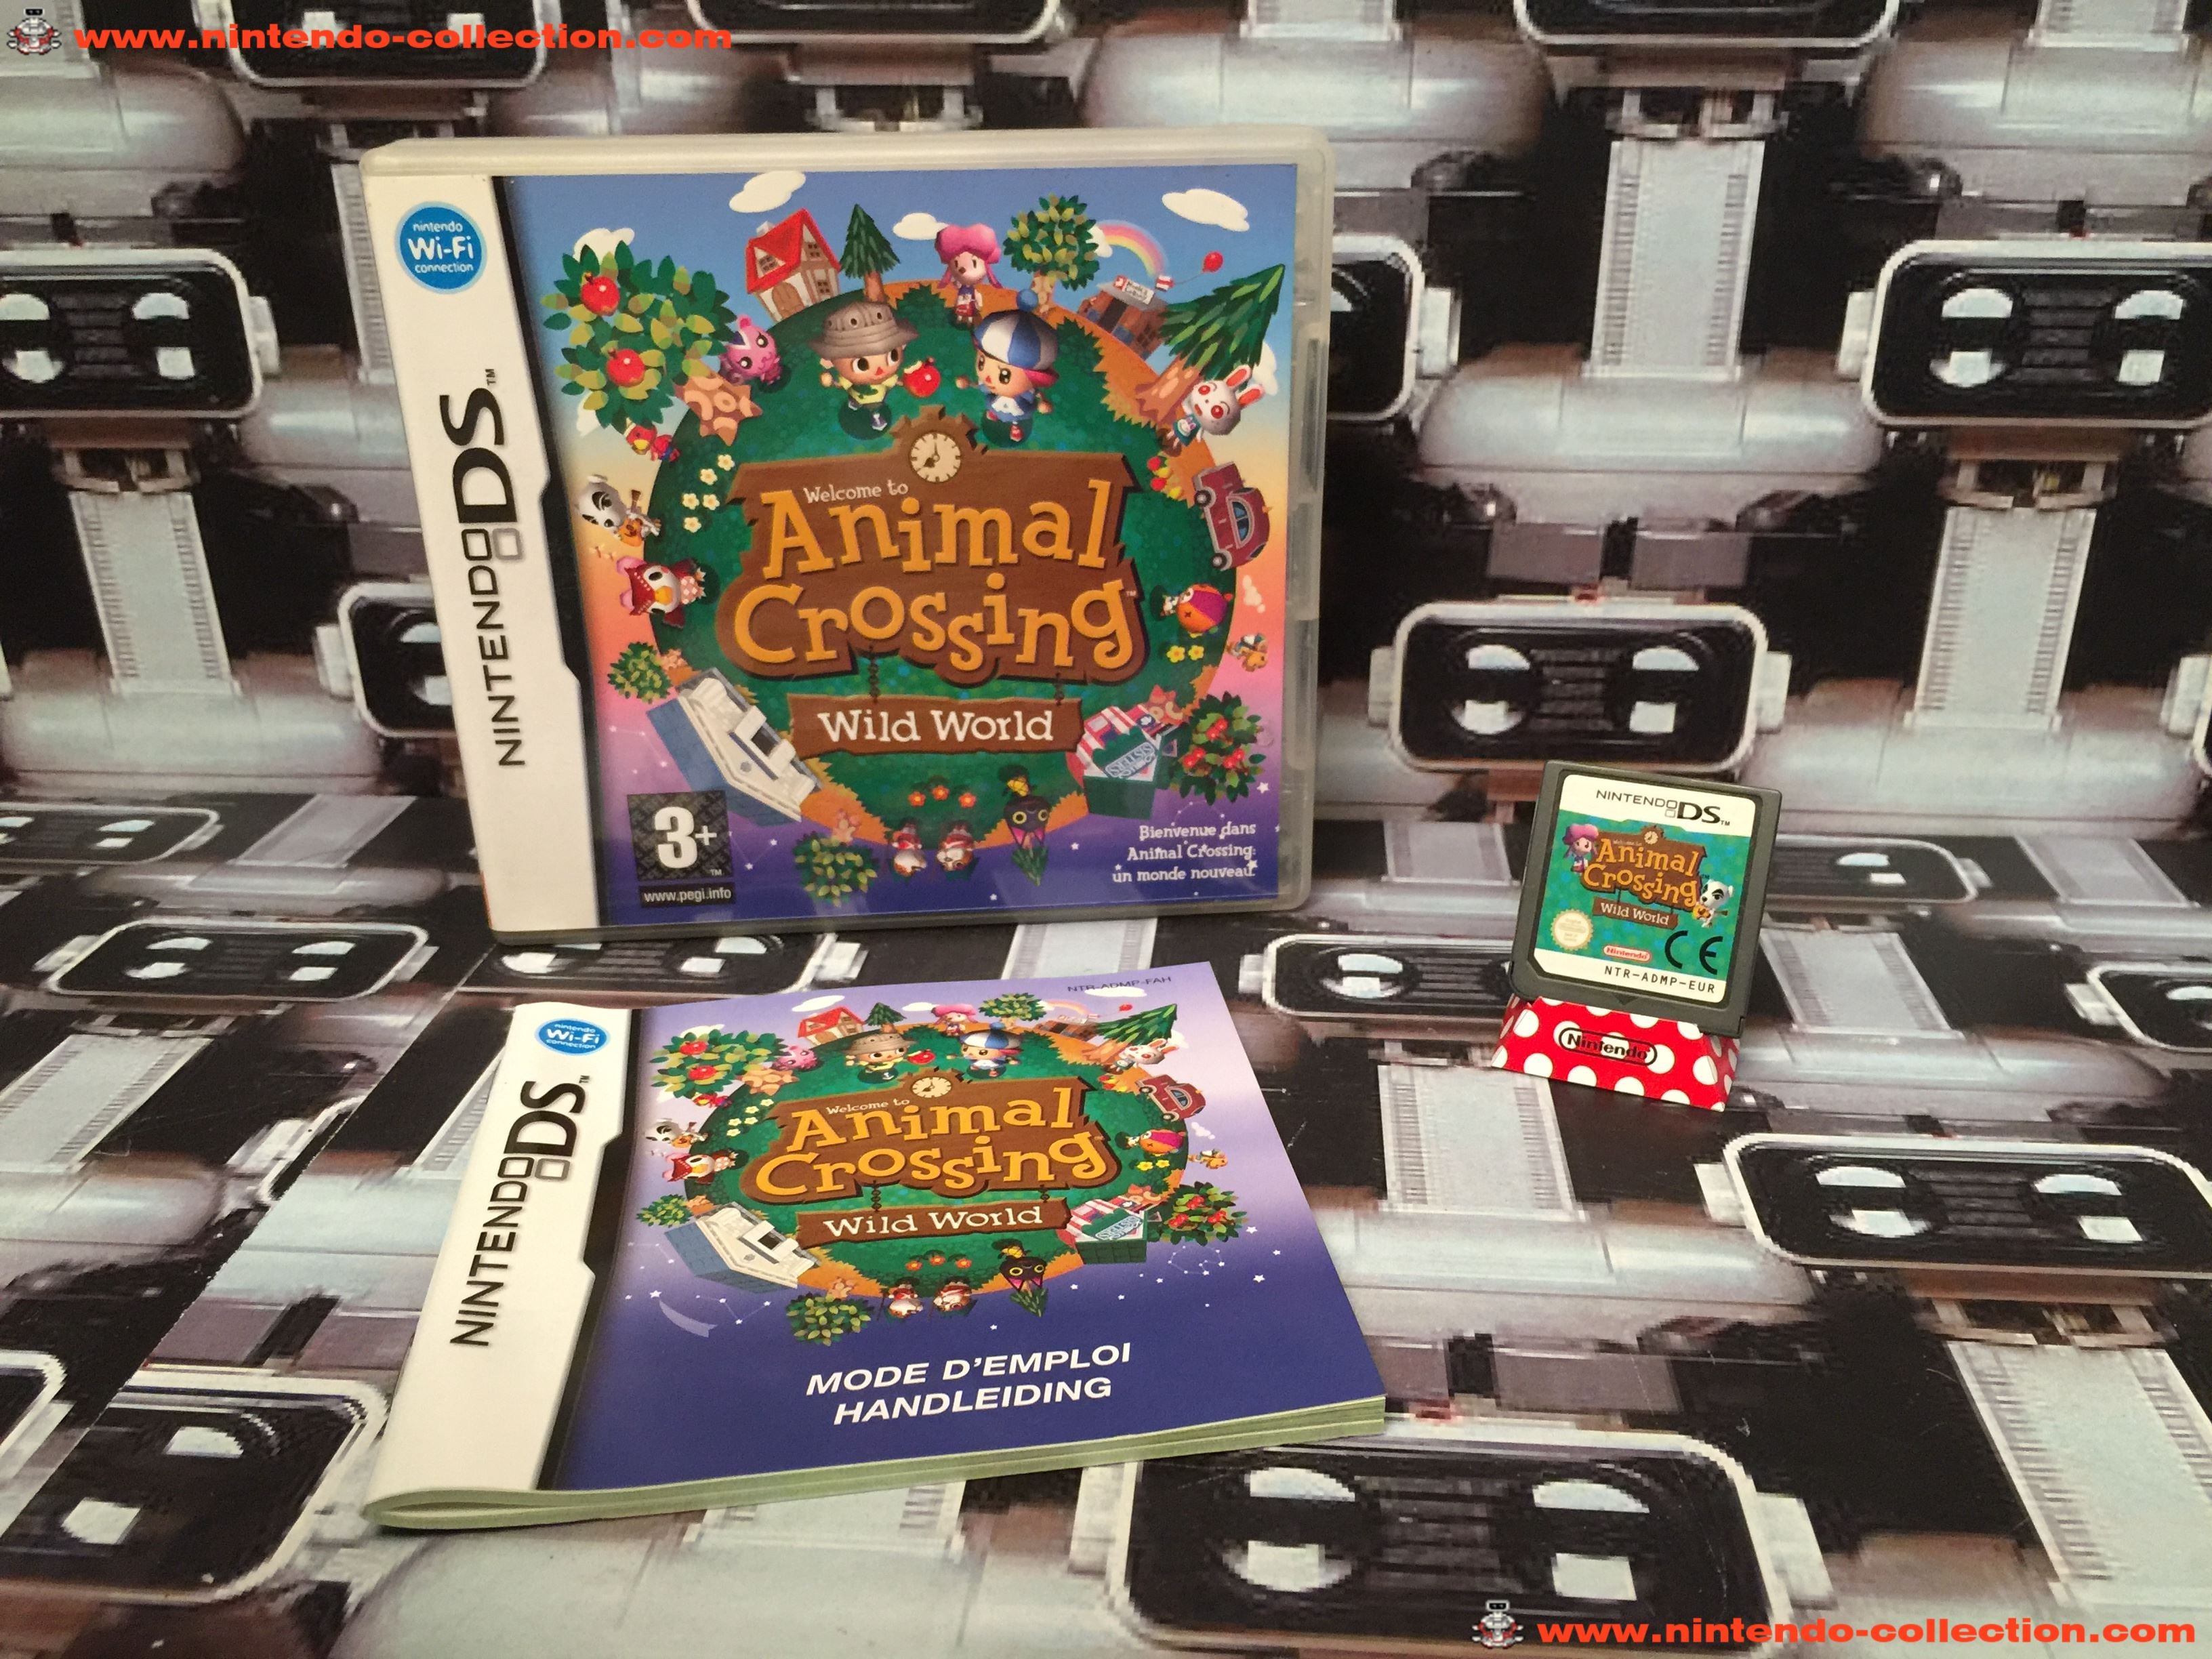 www.nintendo-collection.com - Nintendo DS Jeux Game Animal Crossing Wild World Euro